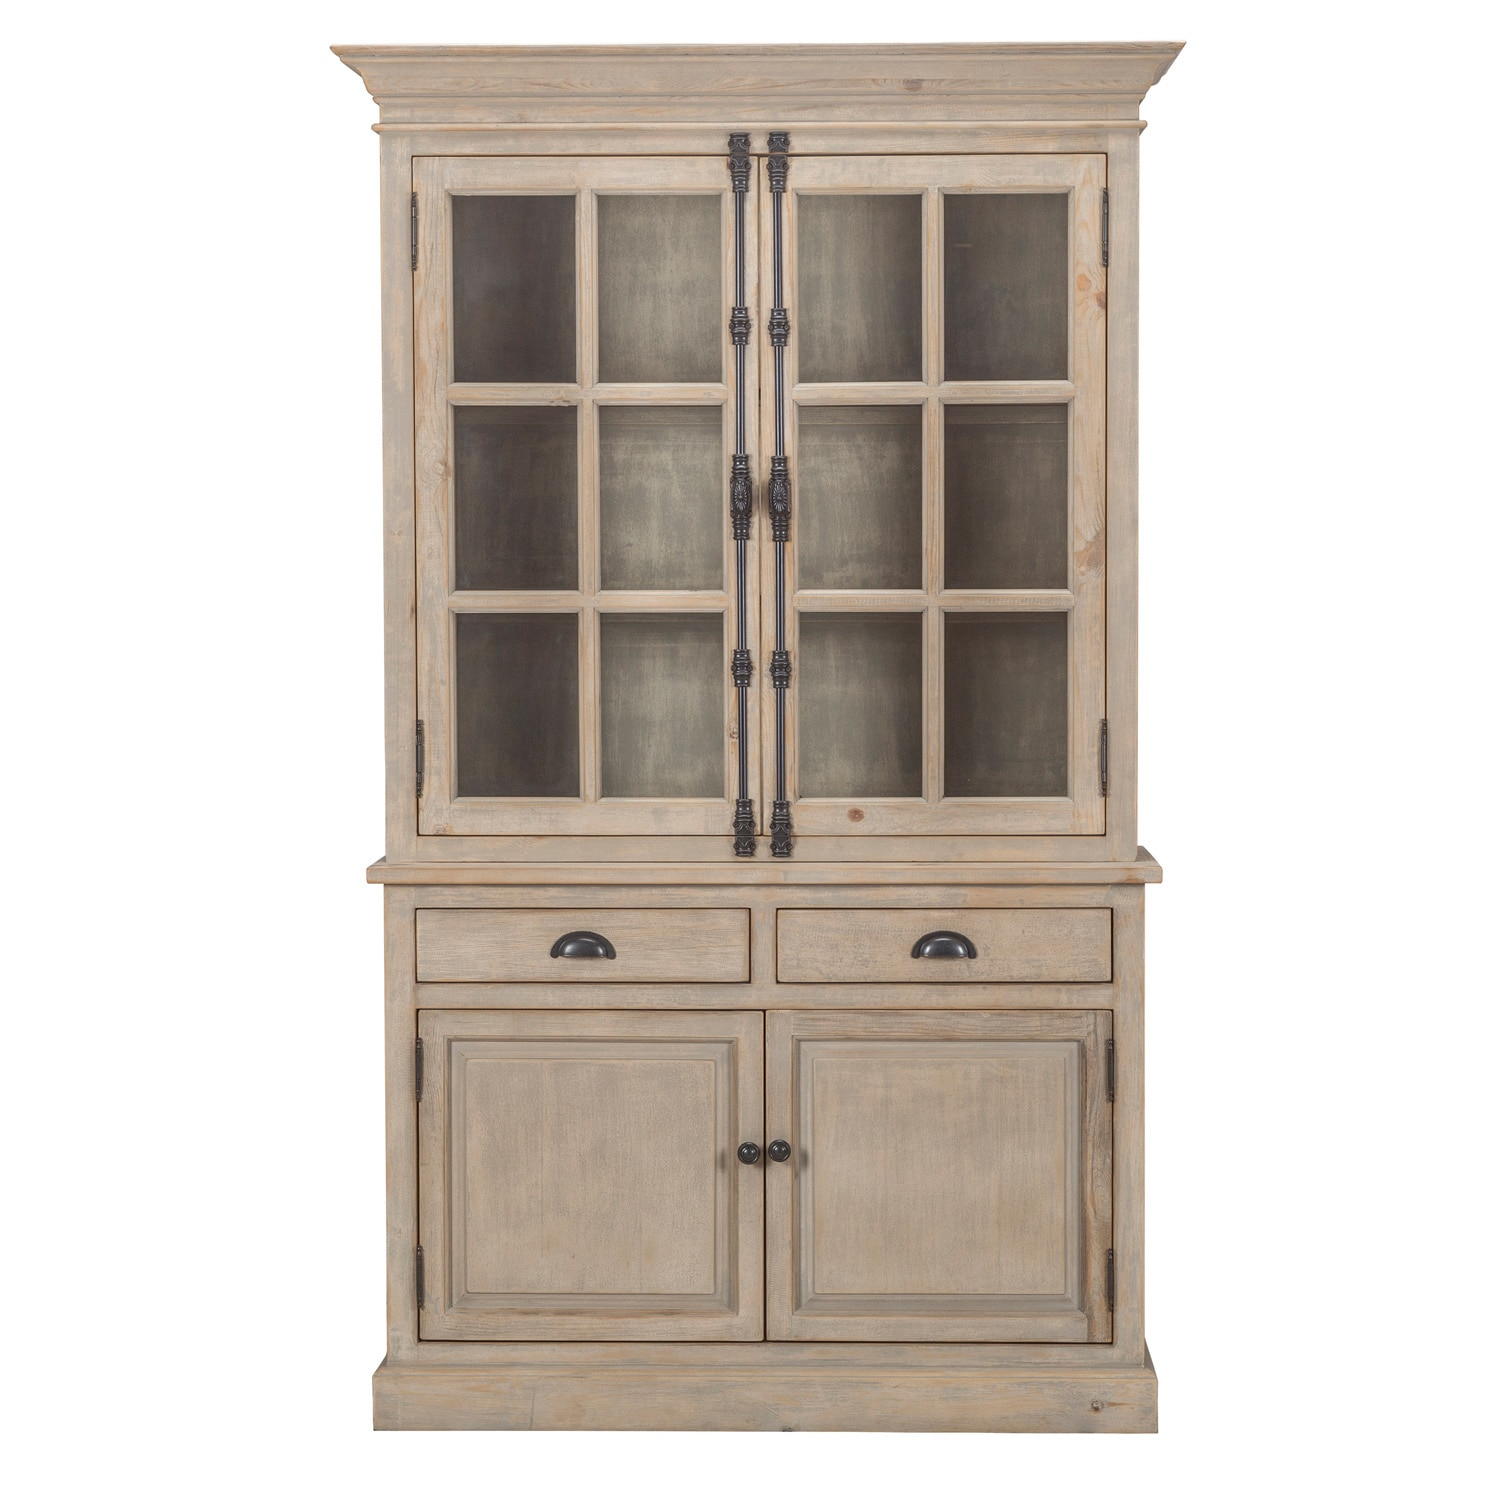 Wilson Reclaimed Wood 53-inch China Cabinet by Kosas Home - Free Shipping  Today - Overstock.com - 19902061